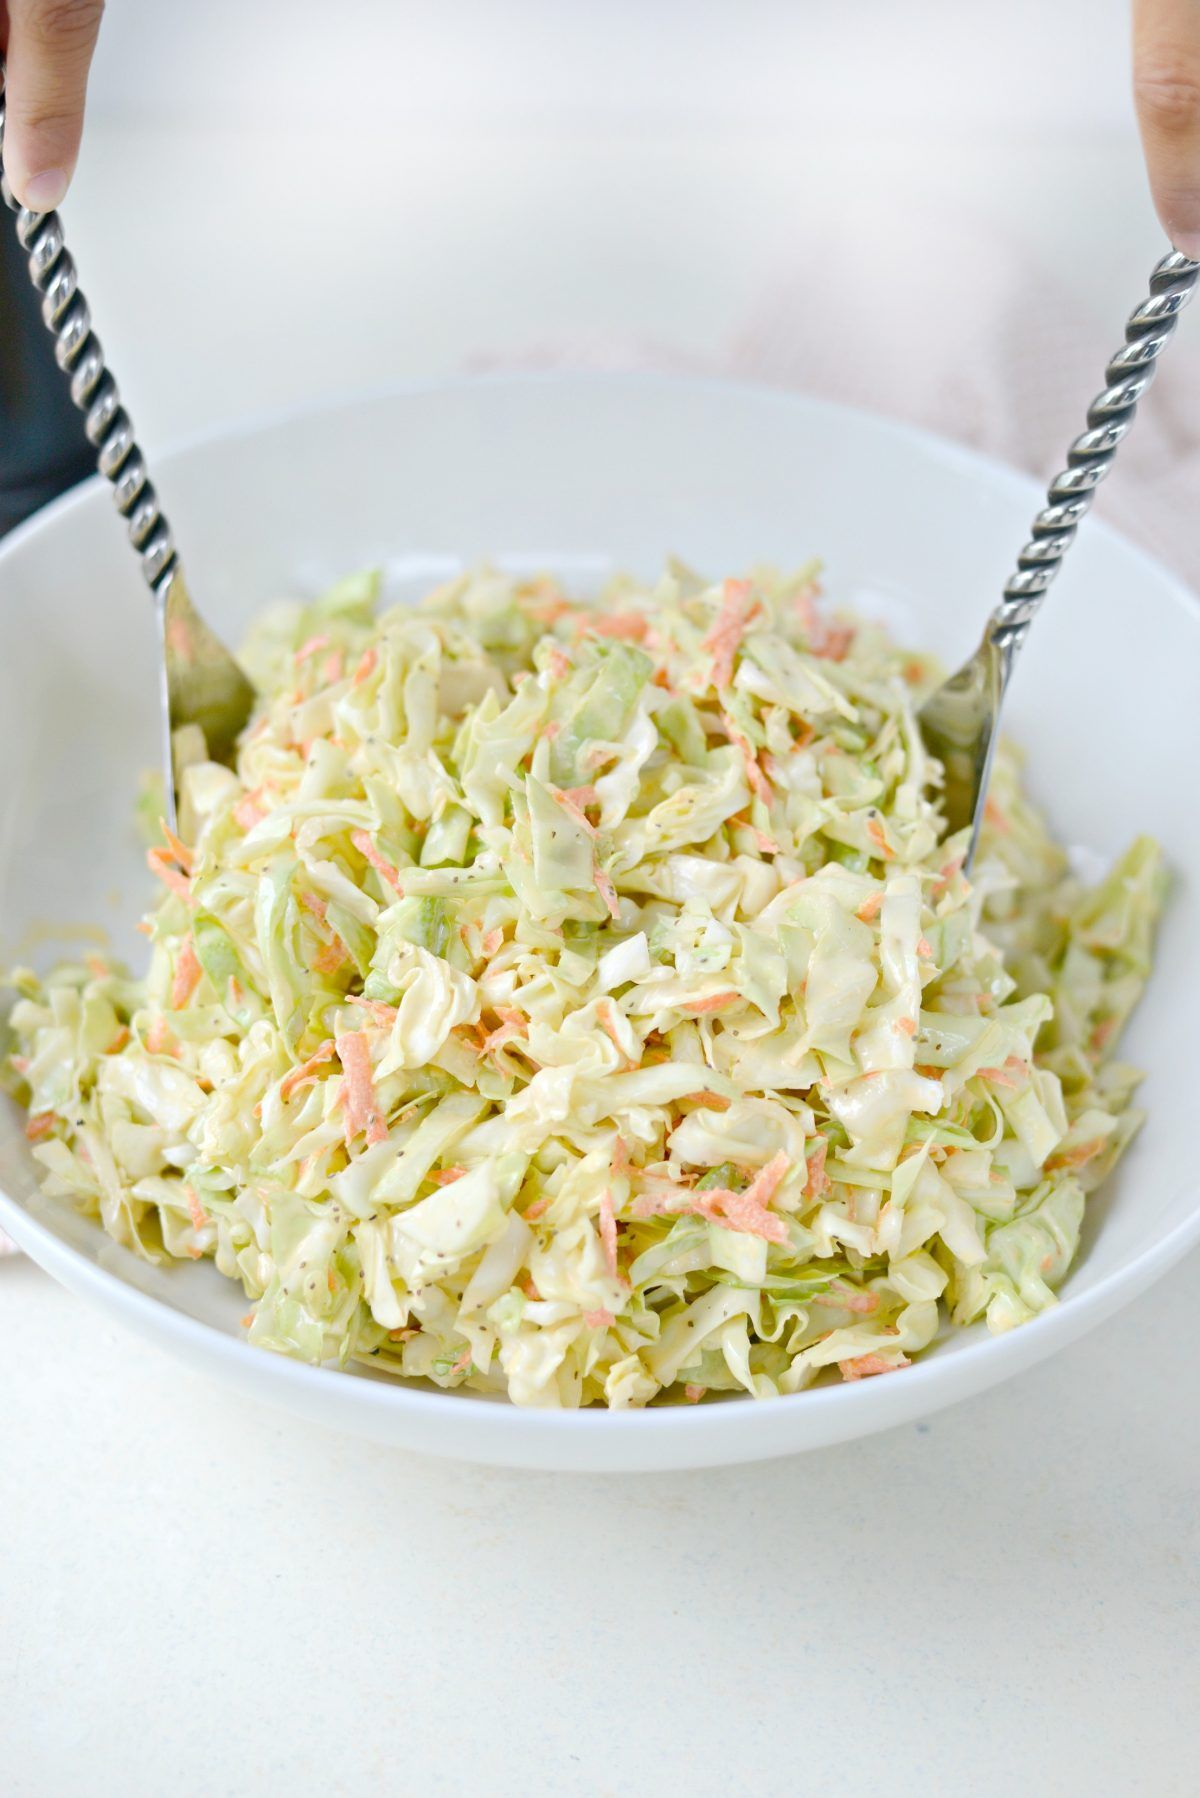 Classic Coleslaw Recipe With Homemade Dressing Recipe With Images Coleslaw Recipe Recipes Classic Coleslaw Recipe